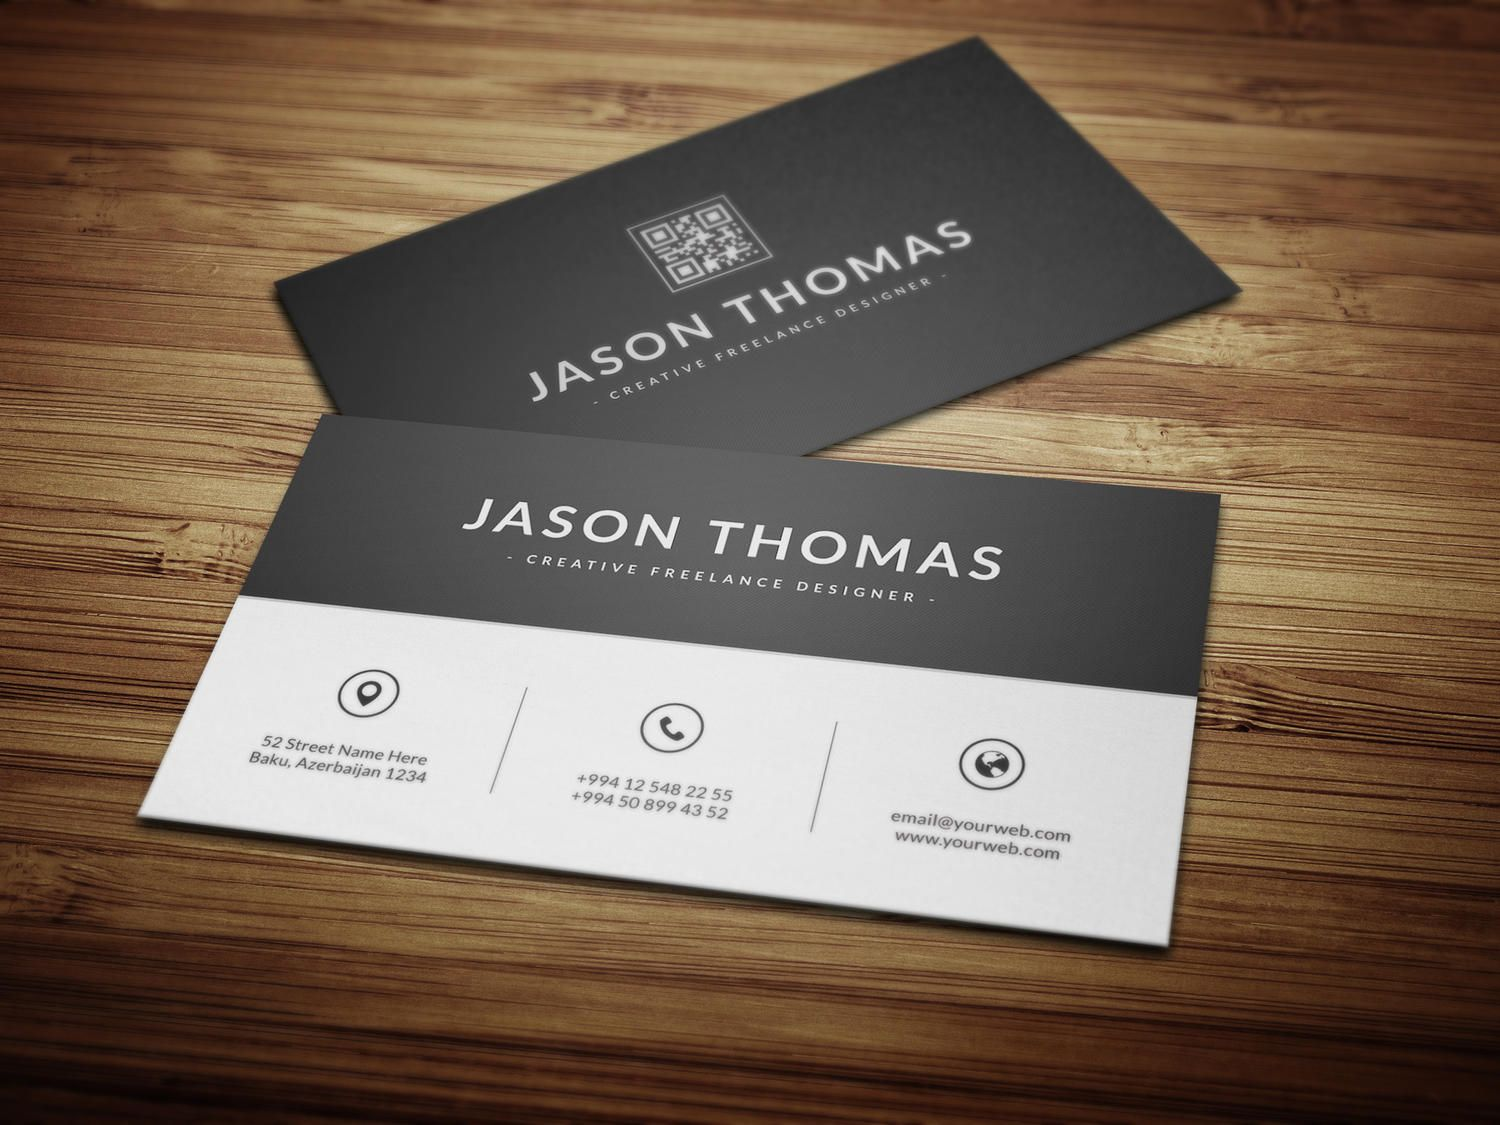 Large Original Bc Mockup 4 Jpg 1500 1125 Business Card Design Creative Printing Business Cards Business Cards Creative